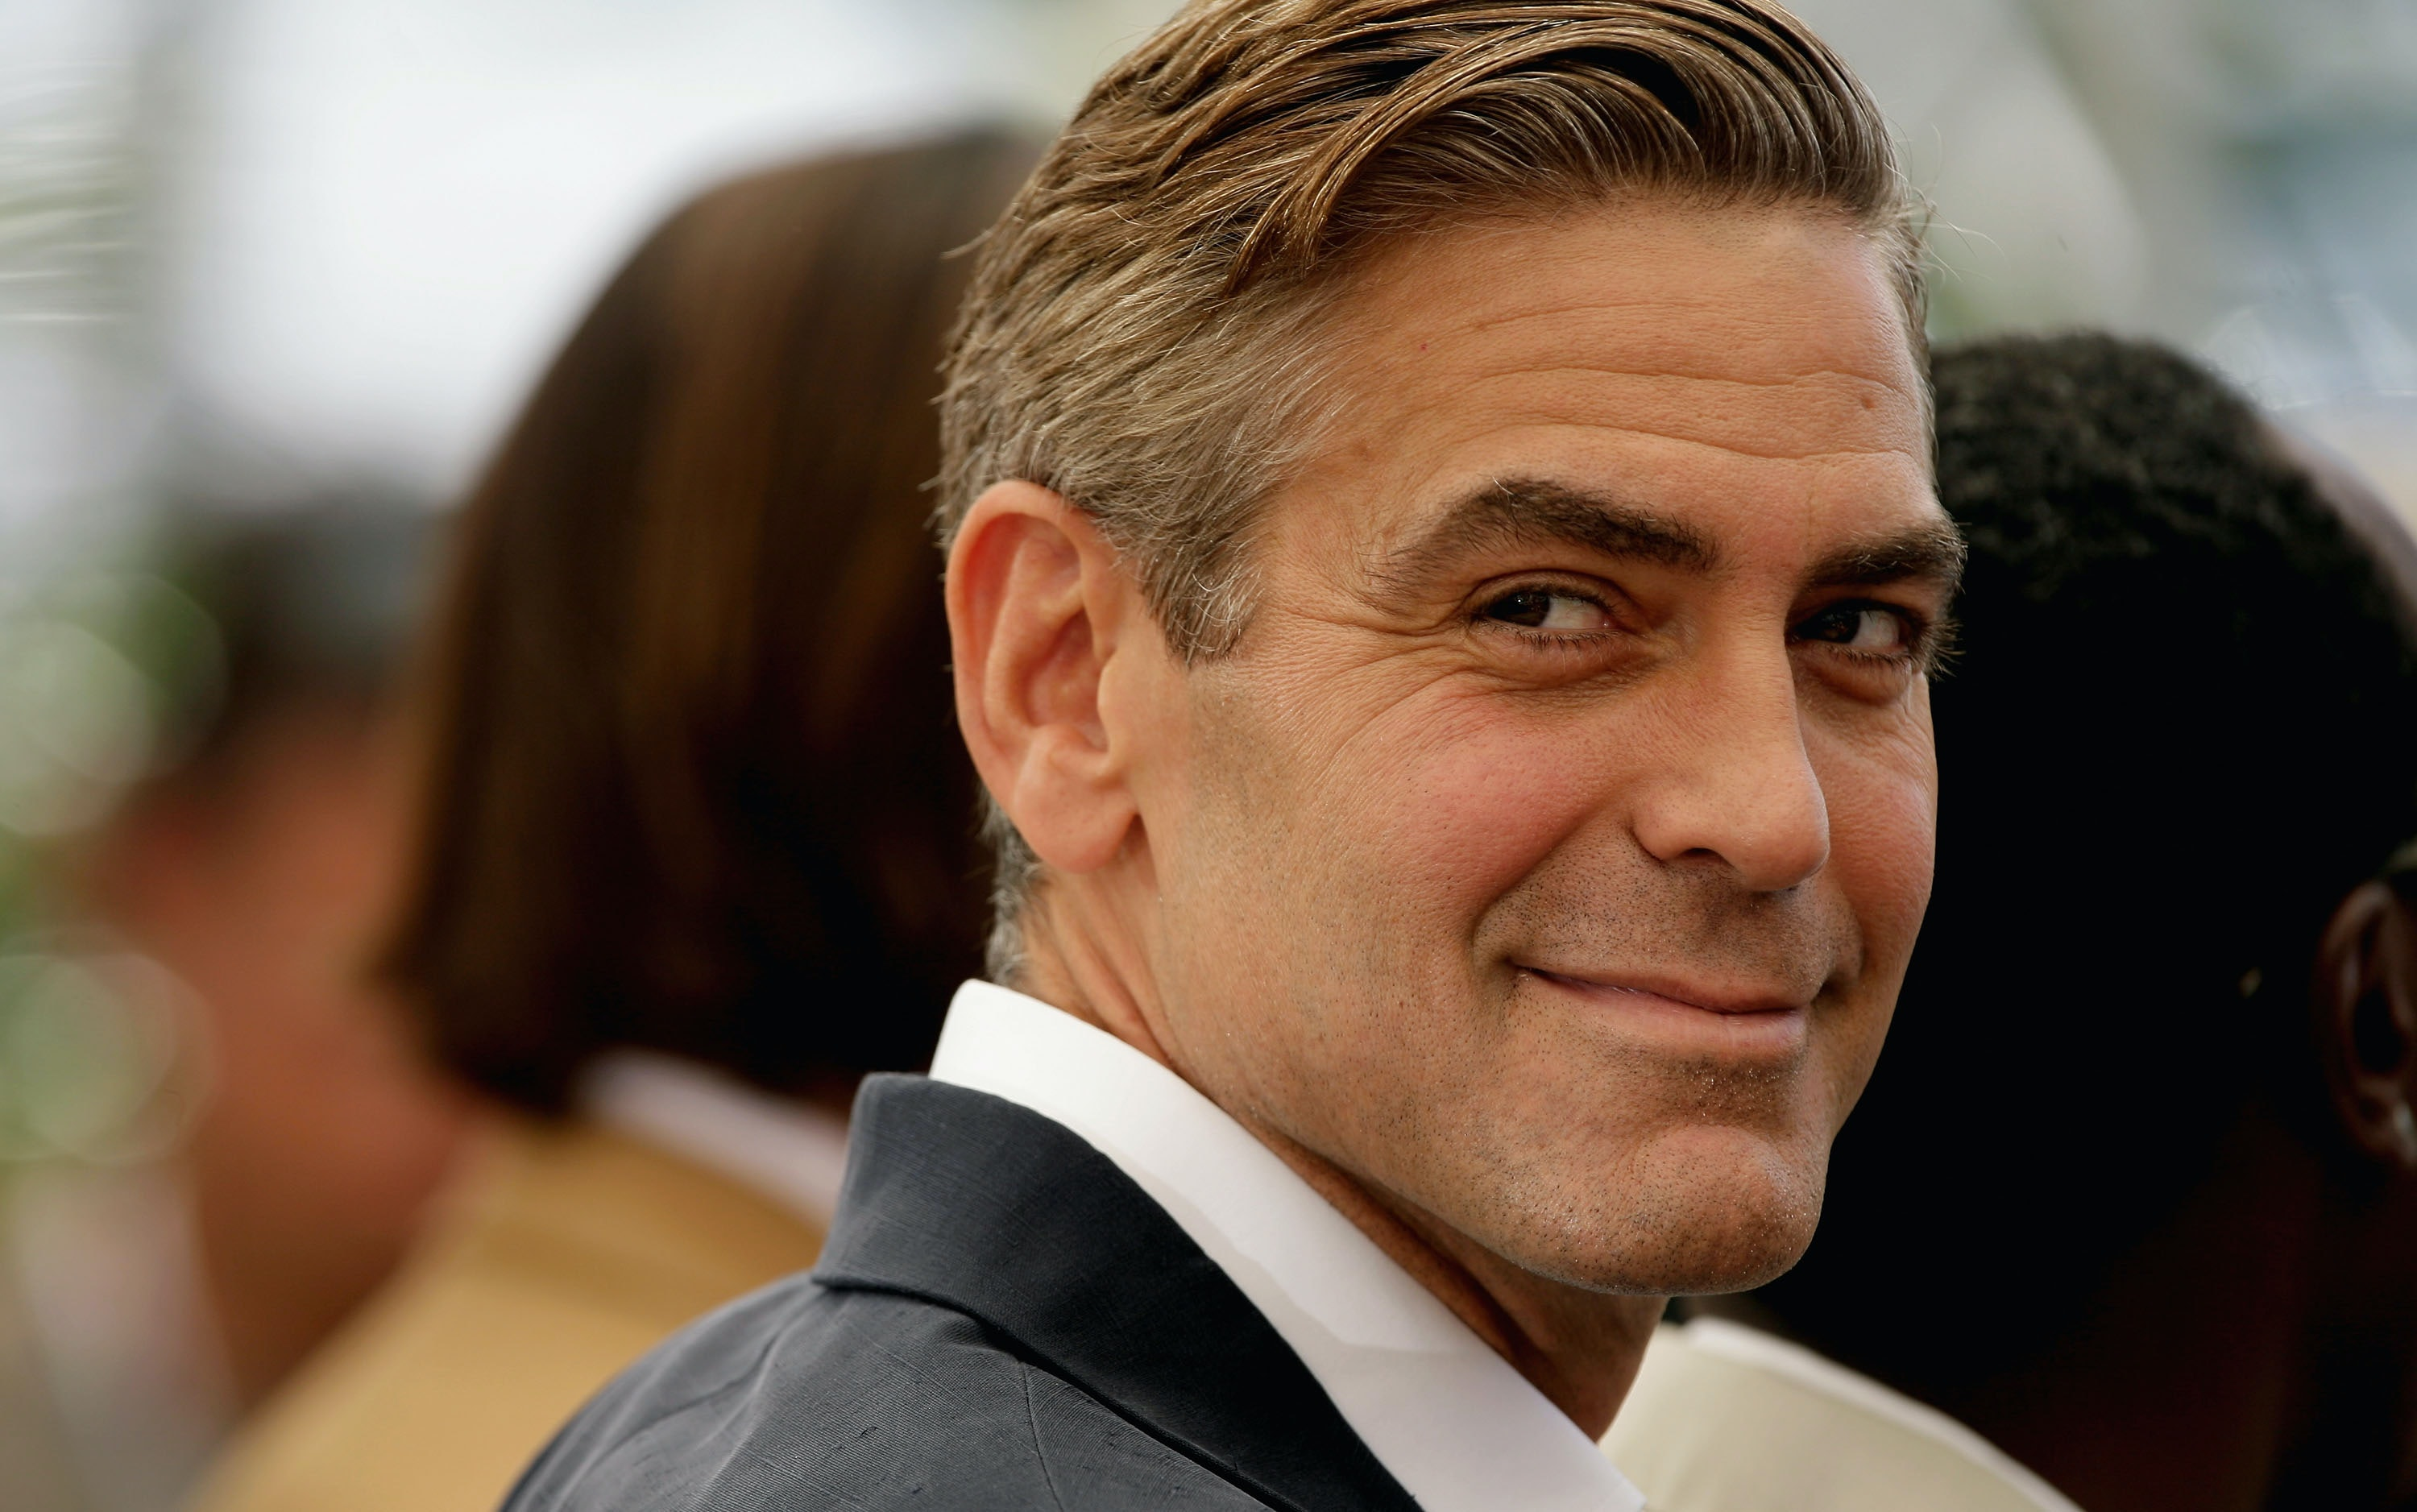 How Did Danny Ocean Die? 'Ocean's 8' Gives Some Major Hints